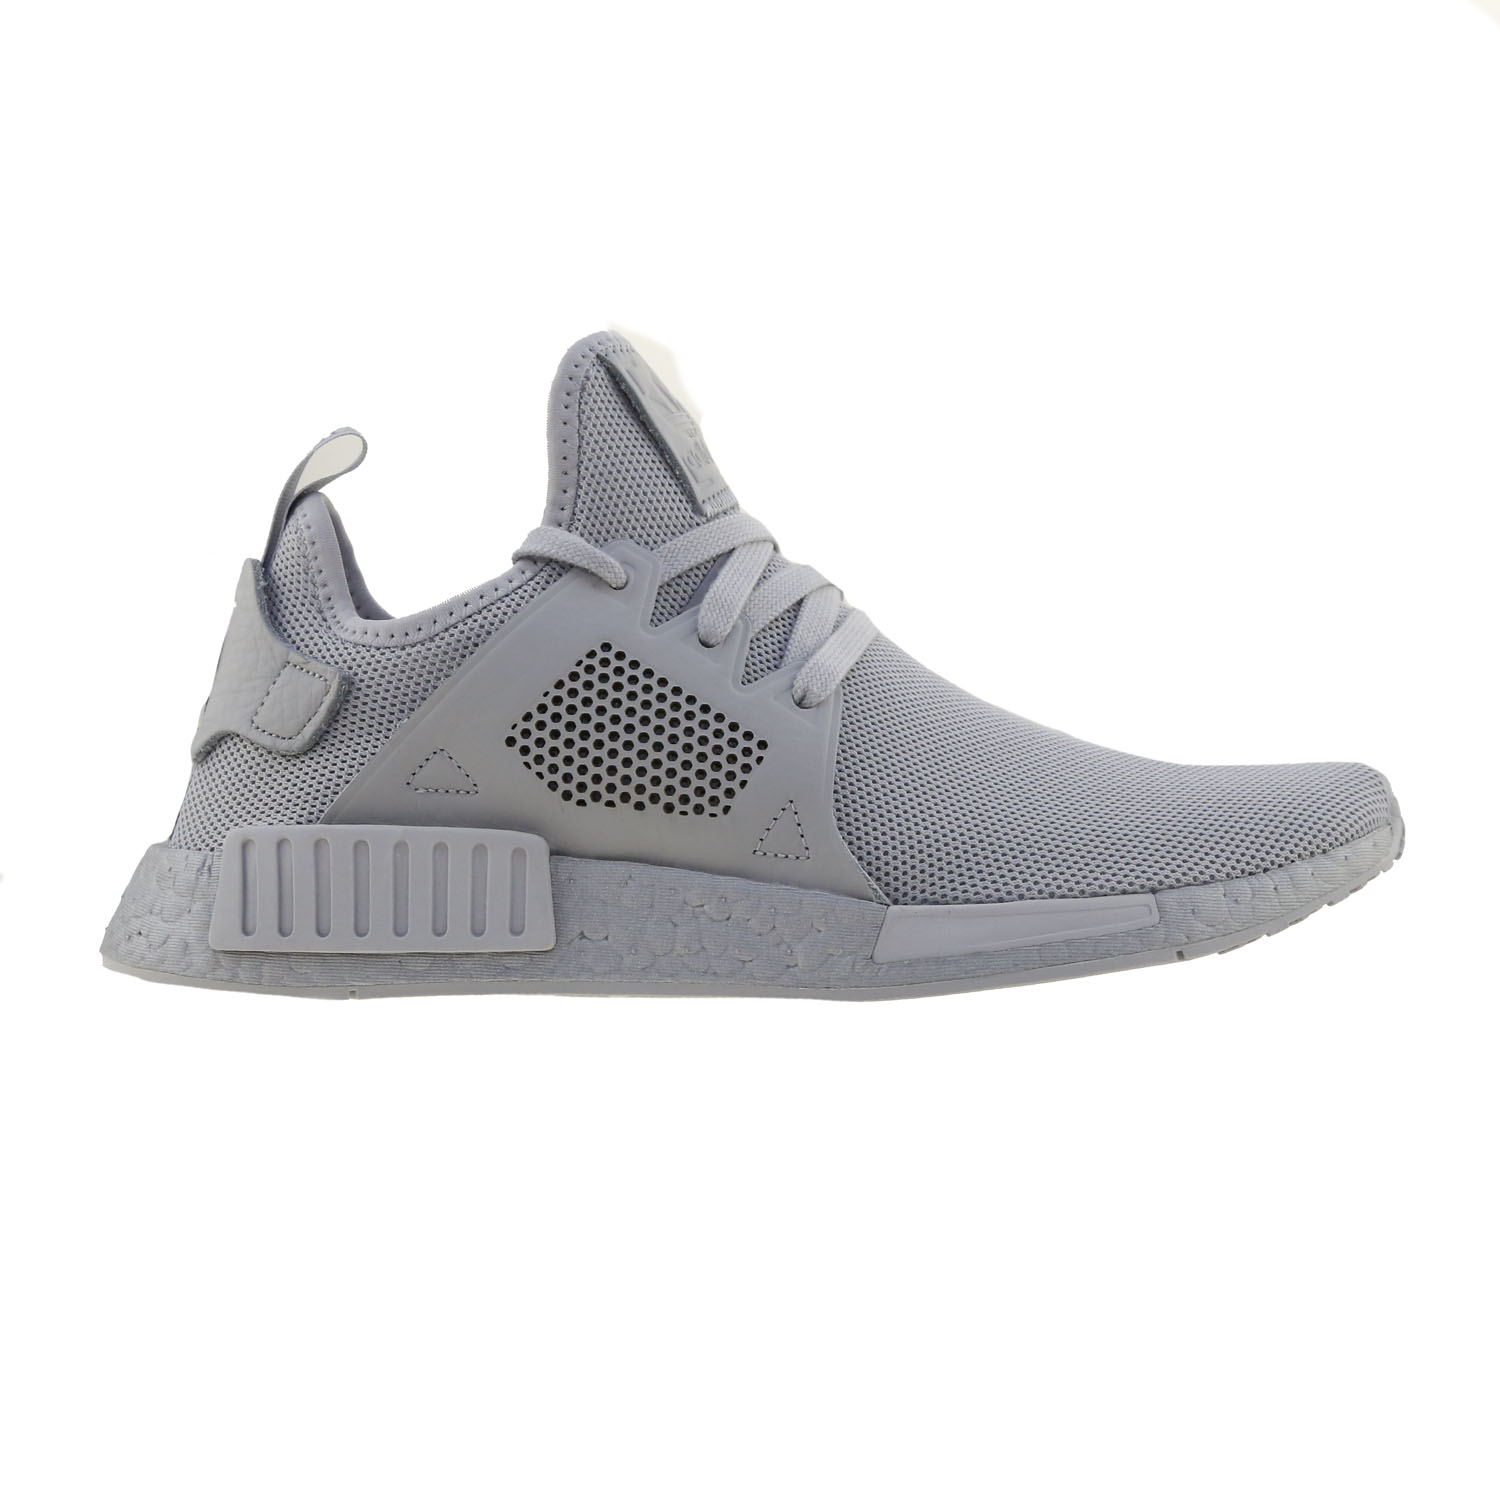 adidas Originals NMD_XR1 M ( BY9923 ) παπούτσια    άνδρας   sneakers   trainers